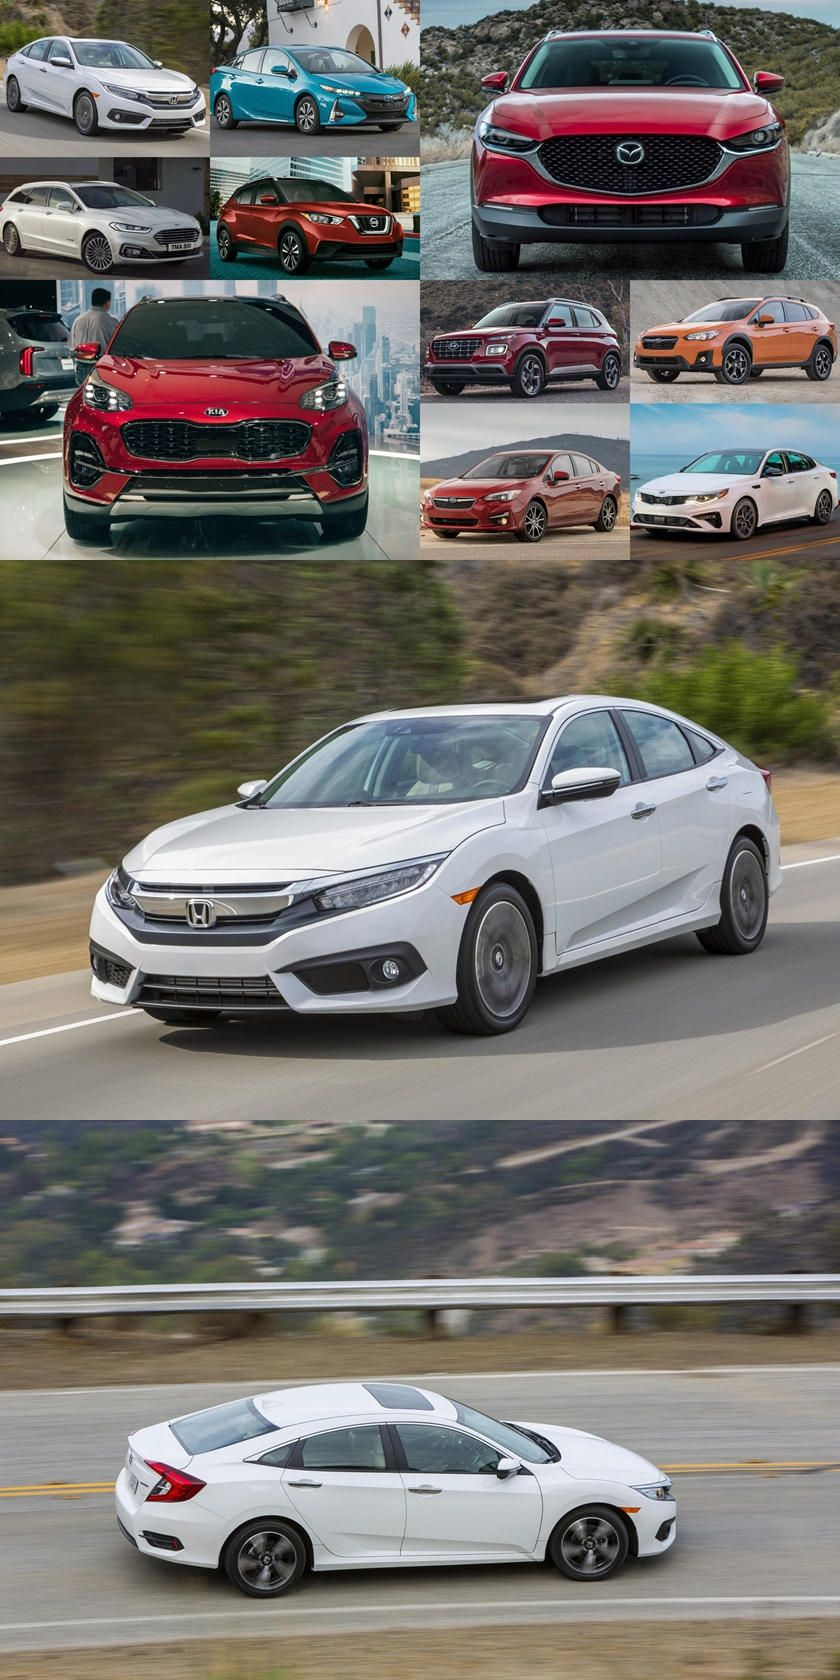 10 Great New Cars For Teenagers In 2020 Safe Practical And Inexpensive You Don T Have To Pick Two In 2020 Best Cars For Teens Car For Teens Inexpensive Cars